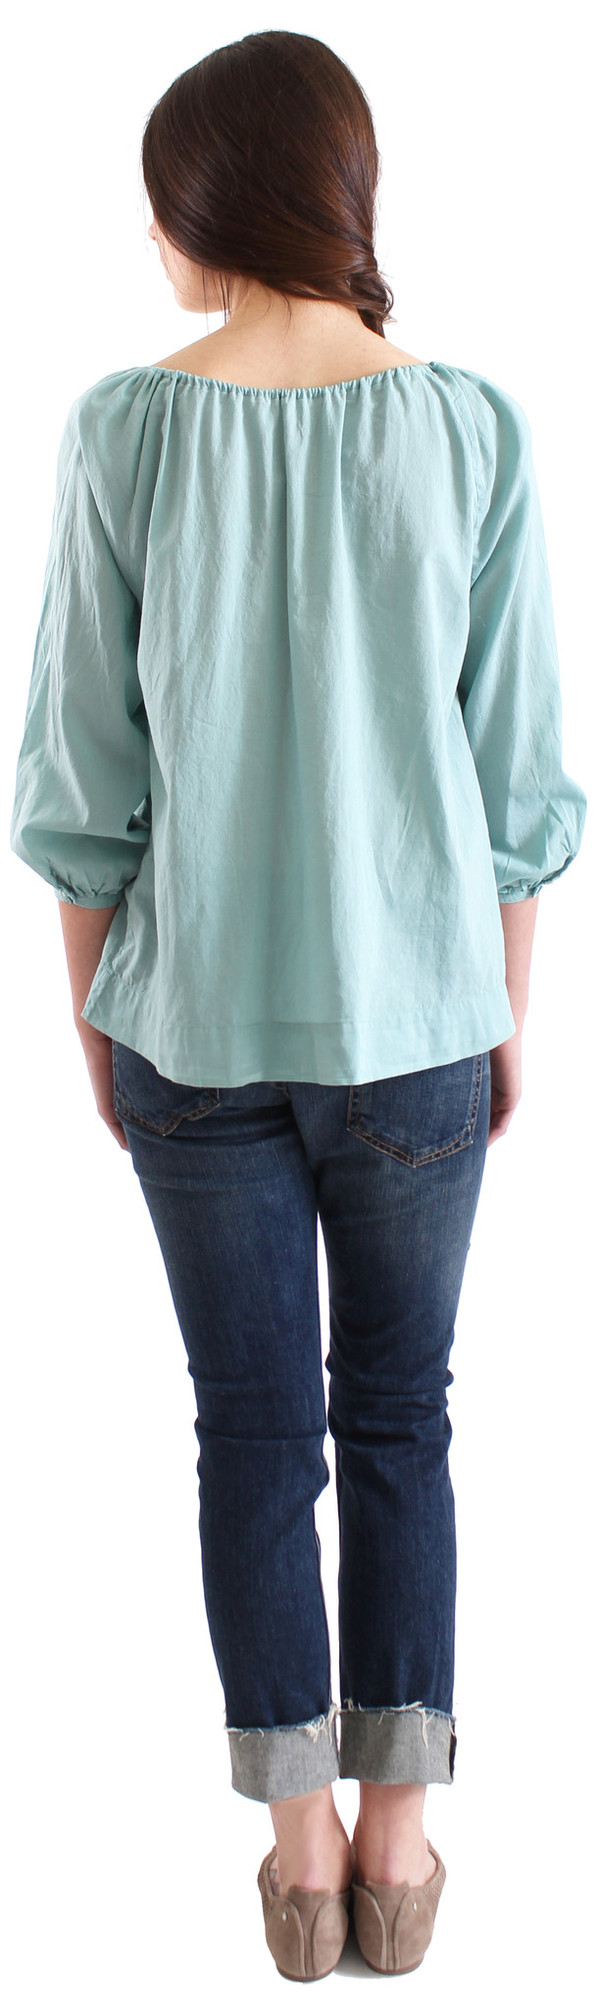 Swildens Orsay Peasant Blouse - Muted Turquoise